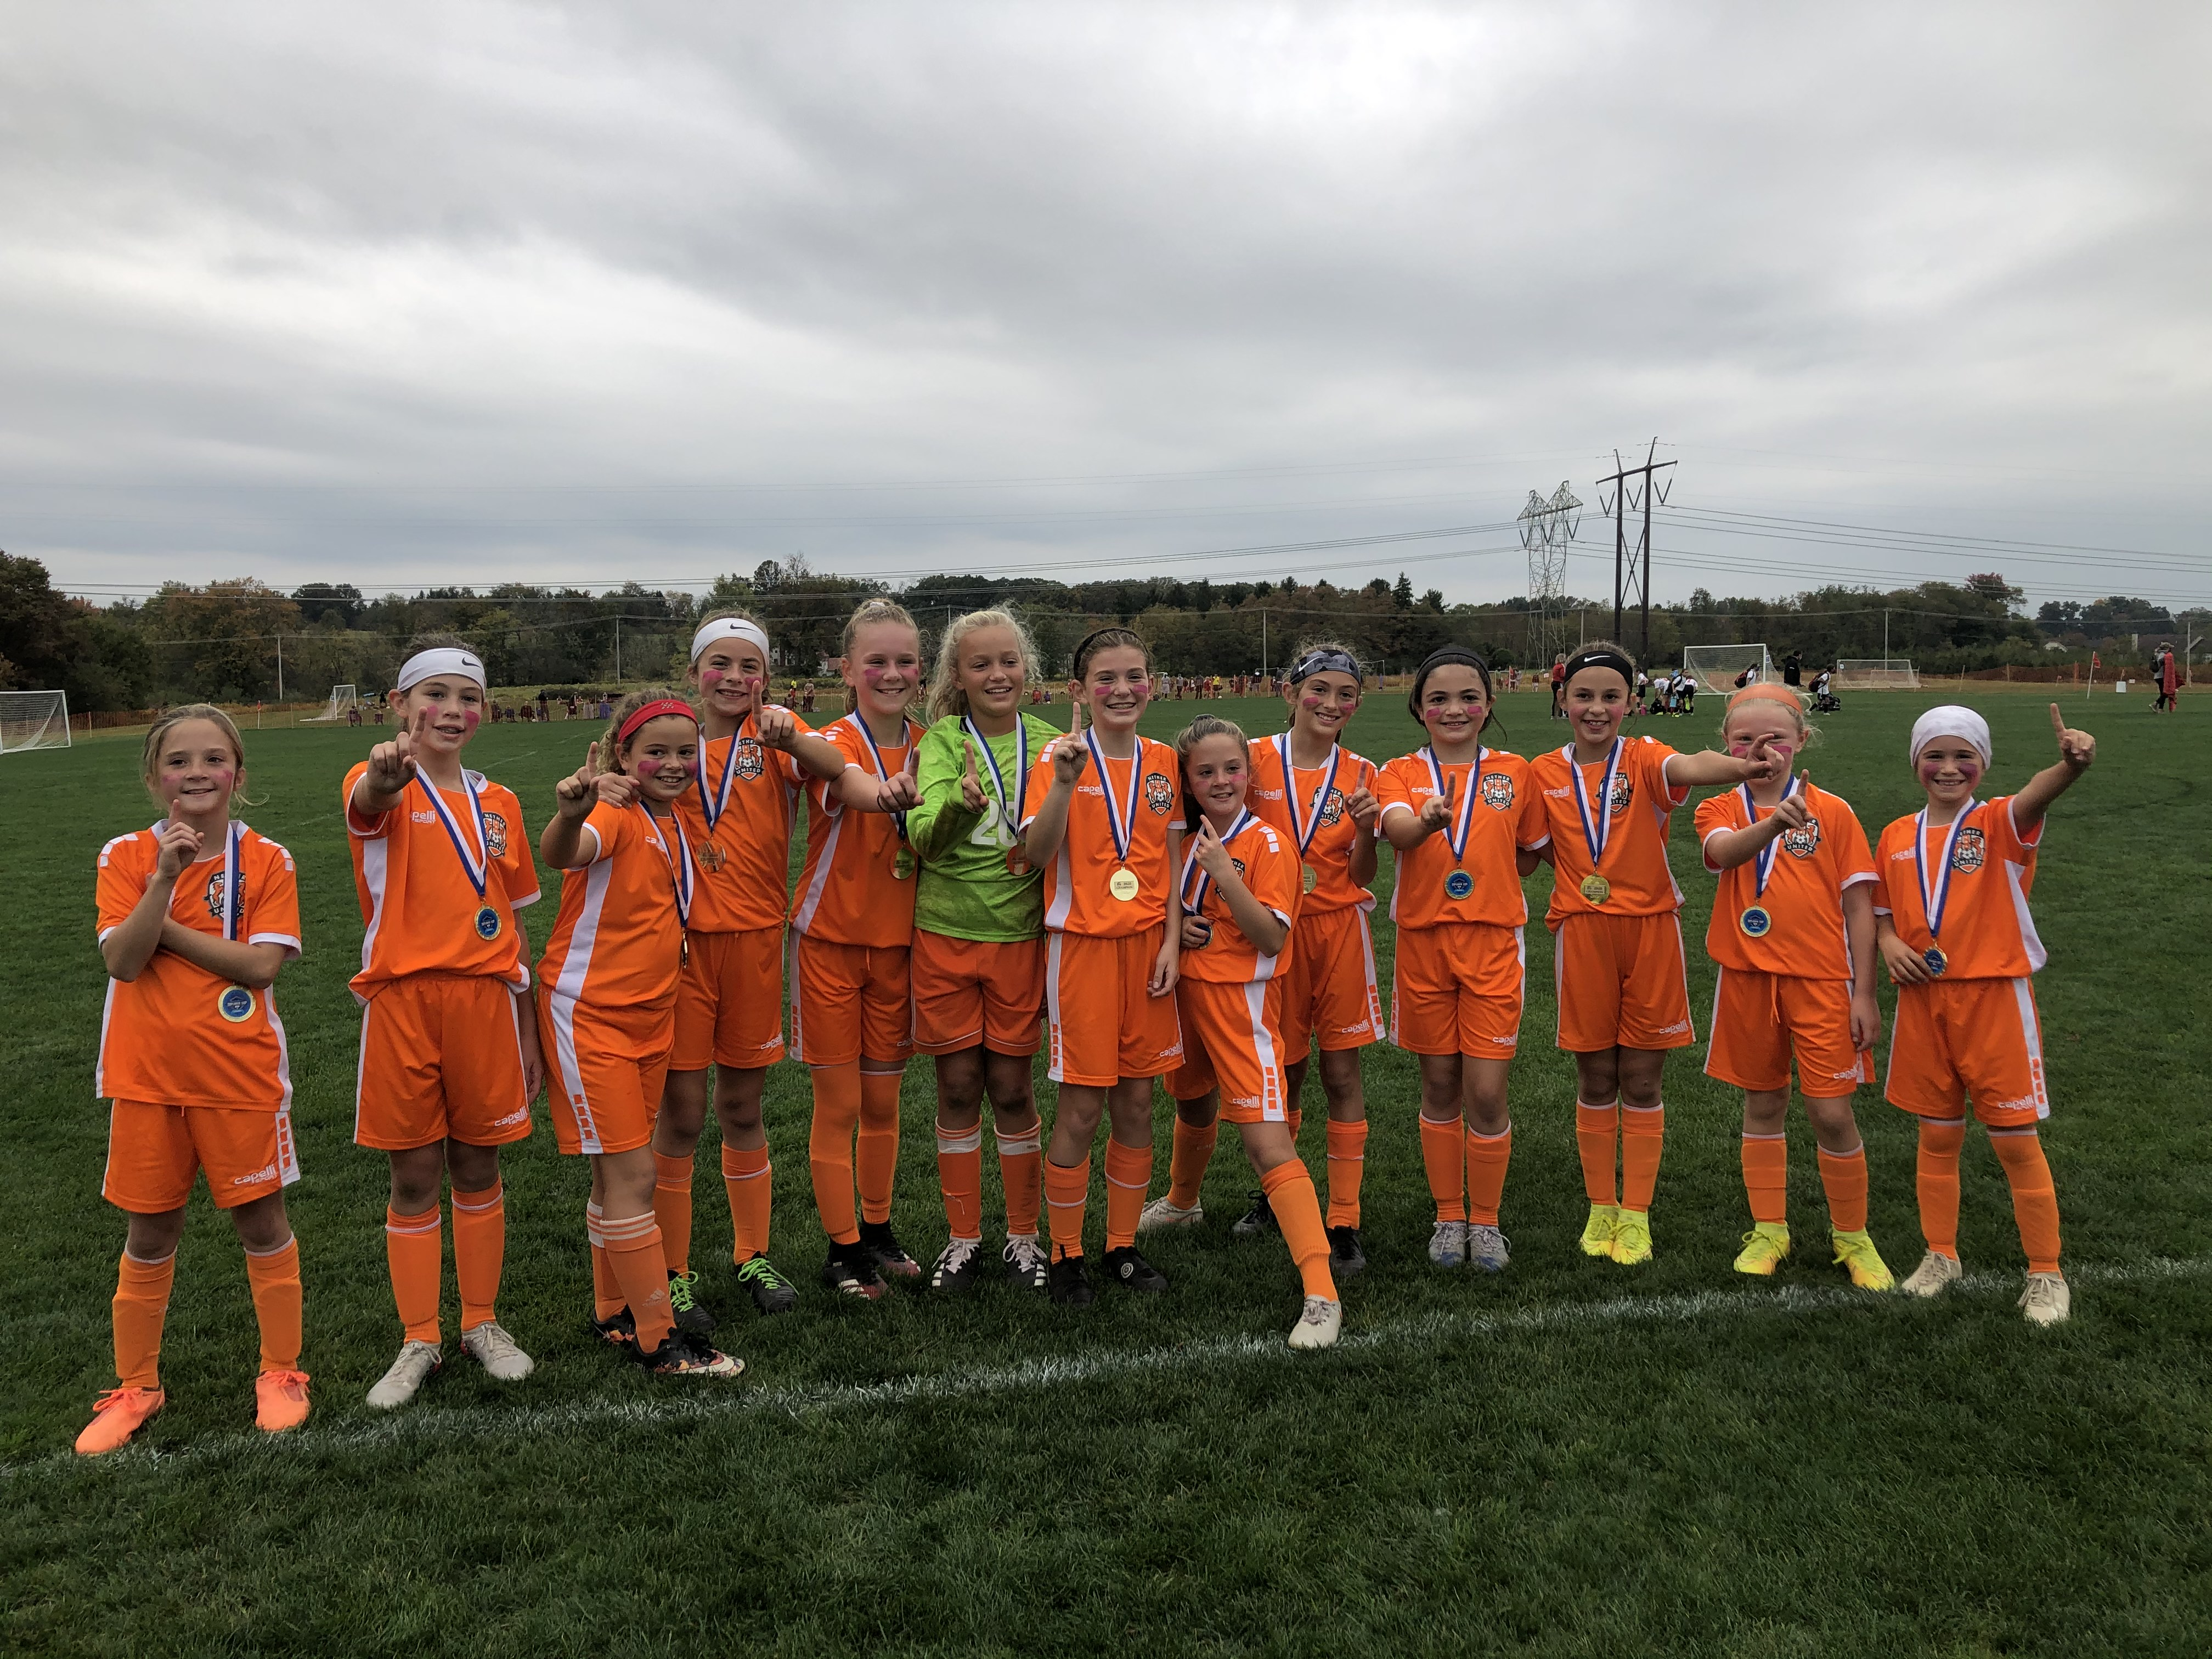 The NU2010 Girls Team claim FIRST place at the Columbus Day Explorer Cup